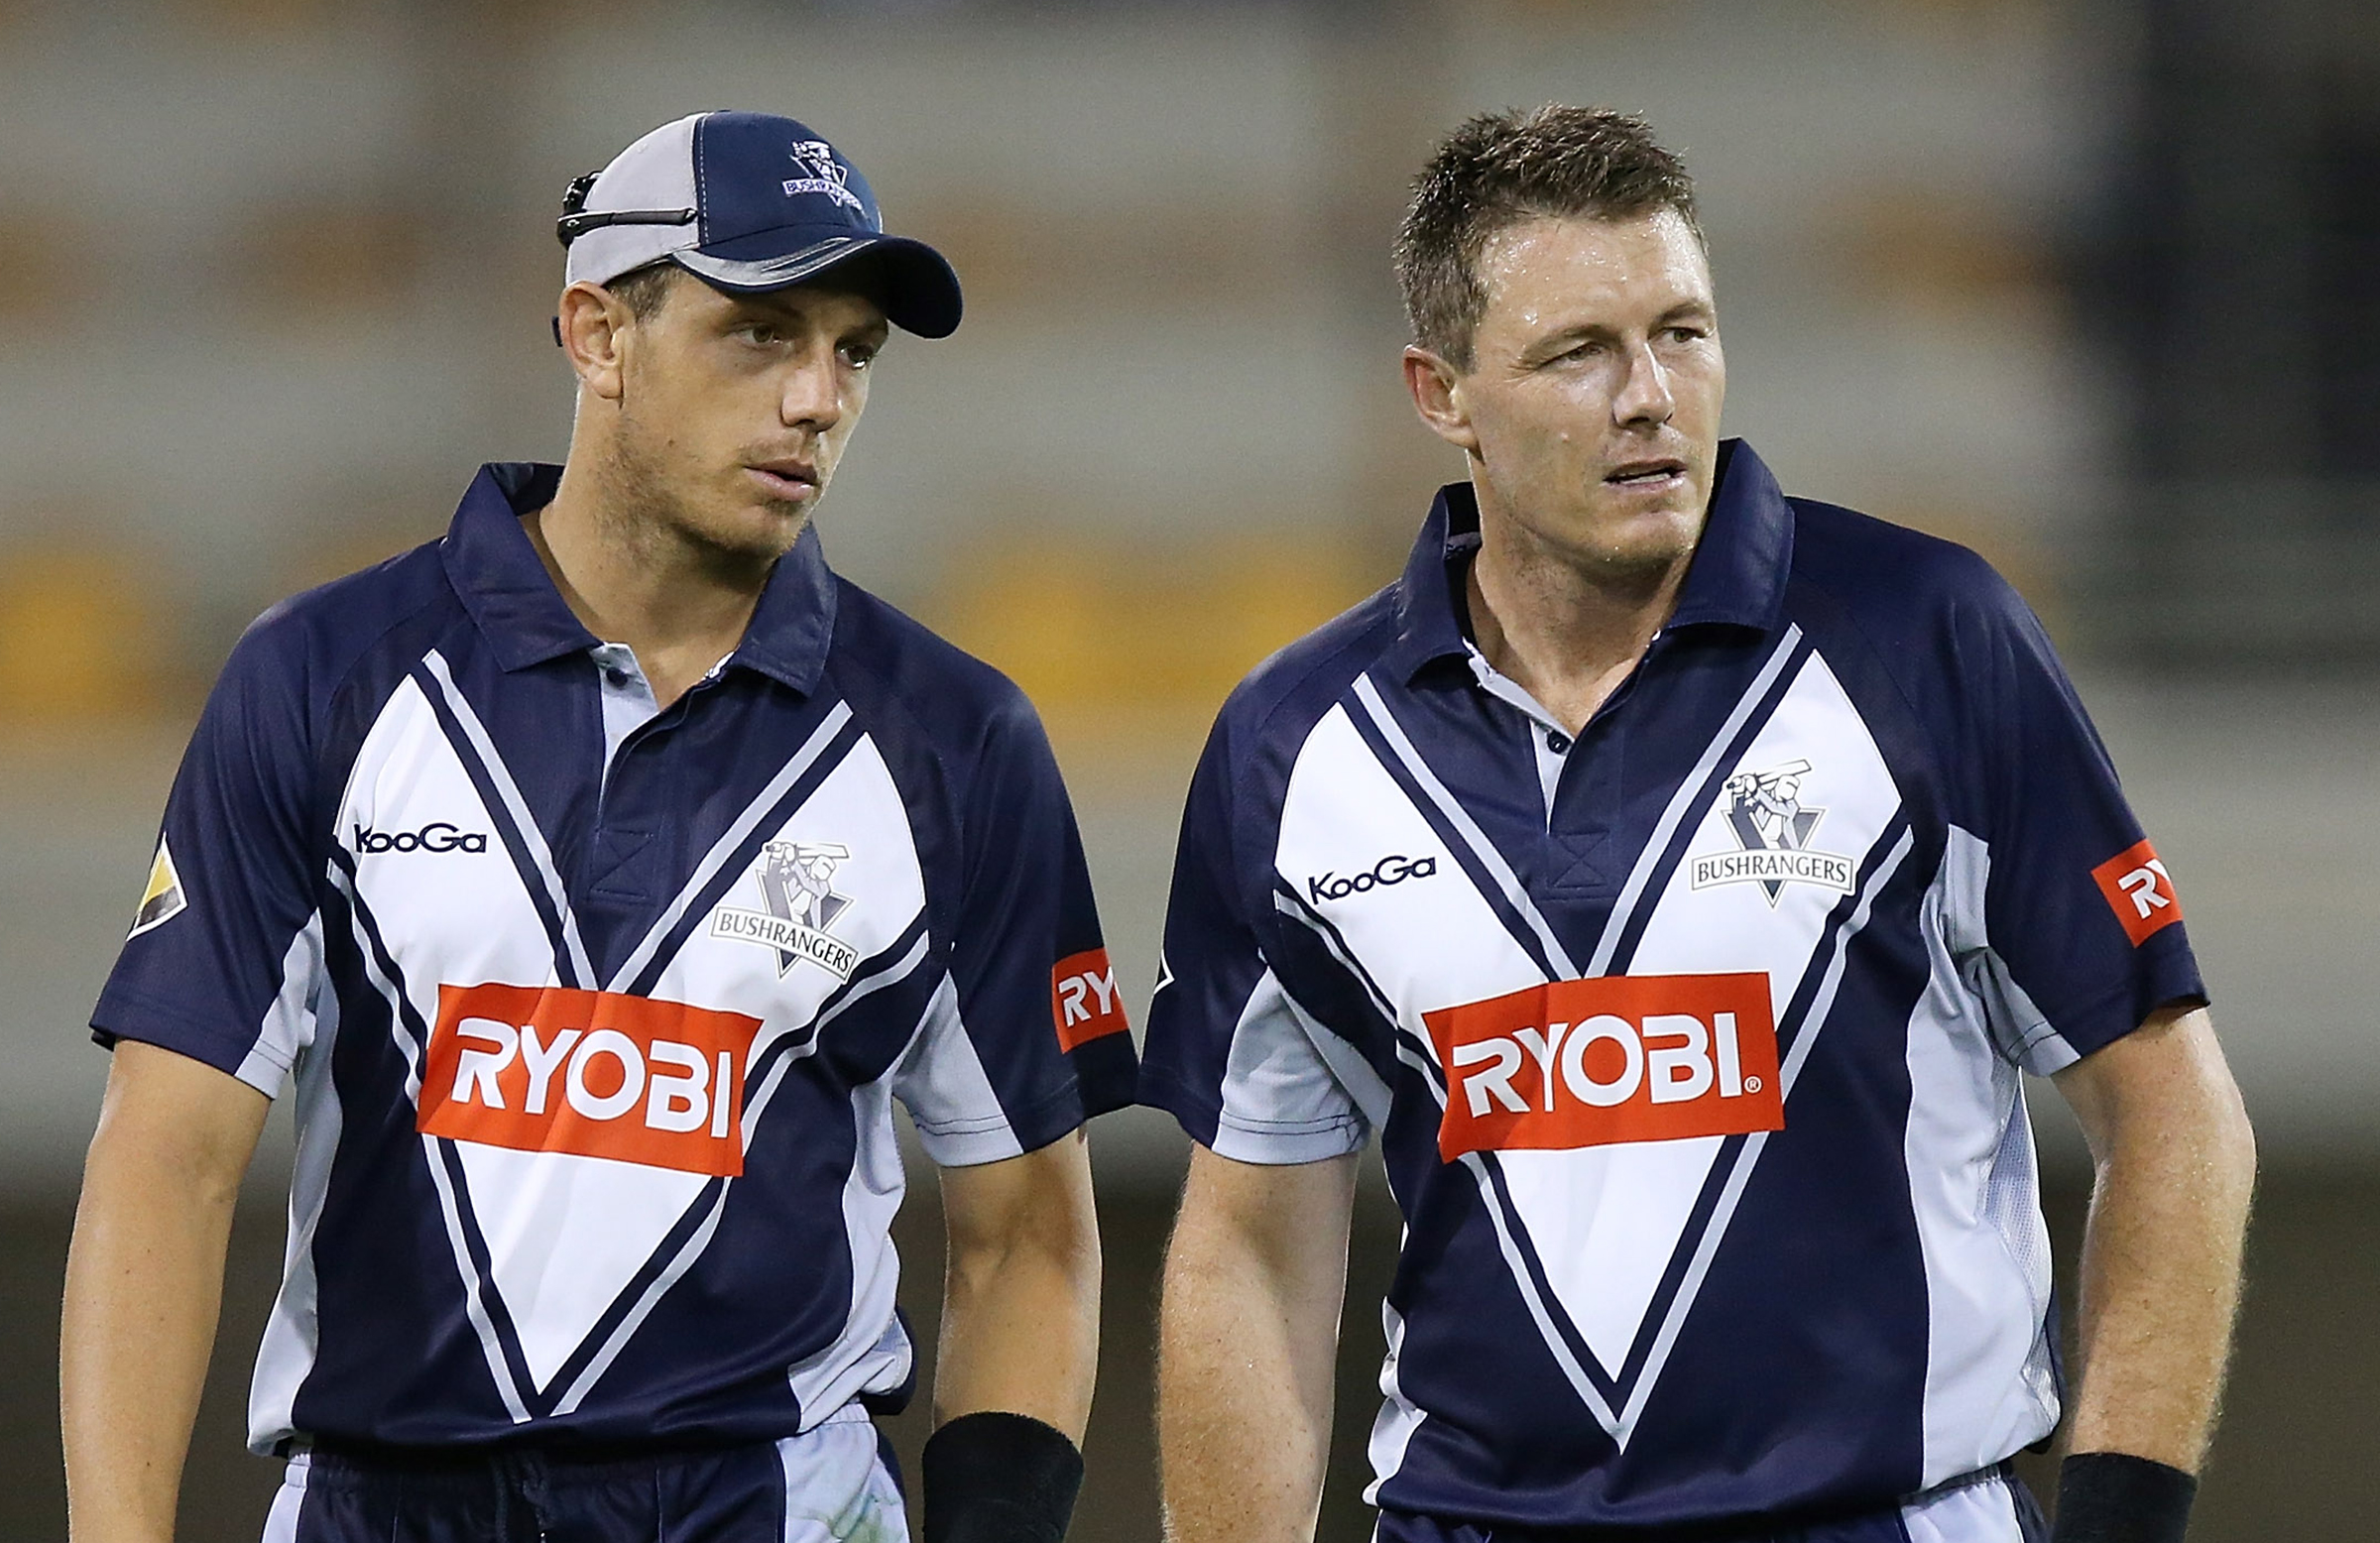 James and Darren playing for Victoria in 2012 // Getty